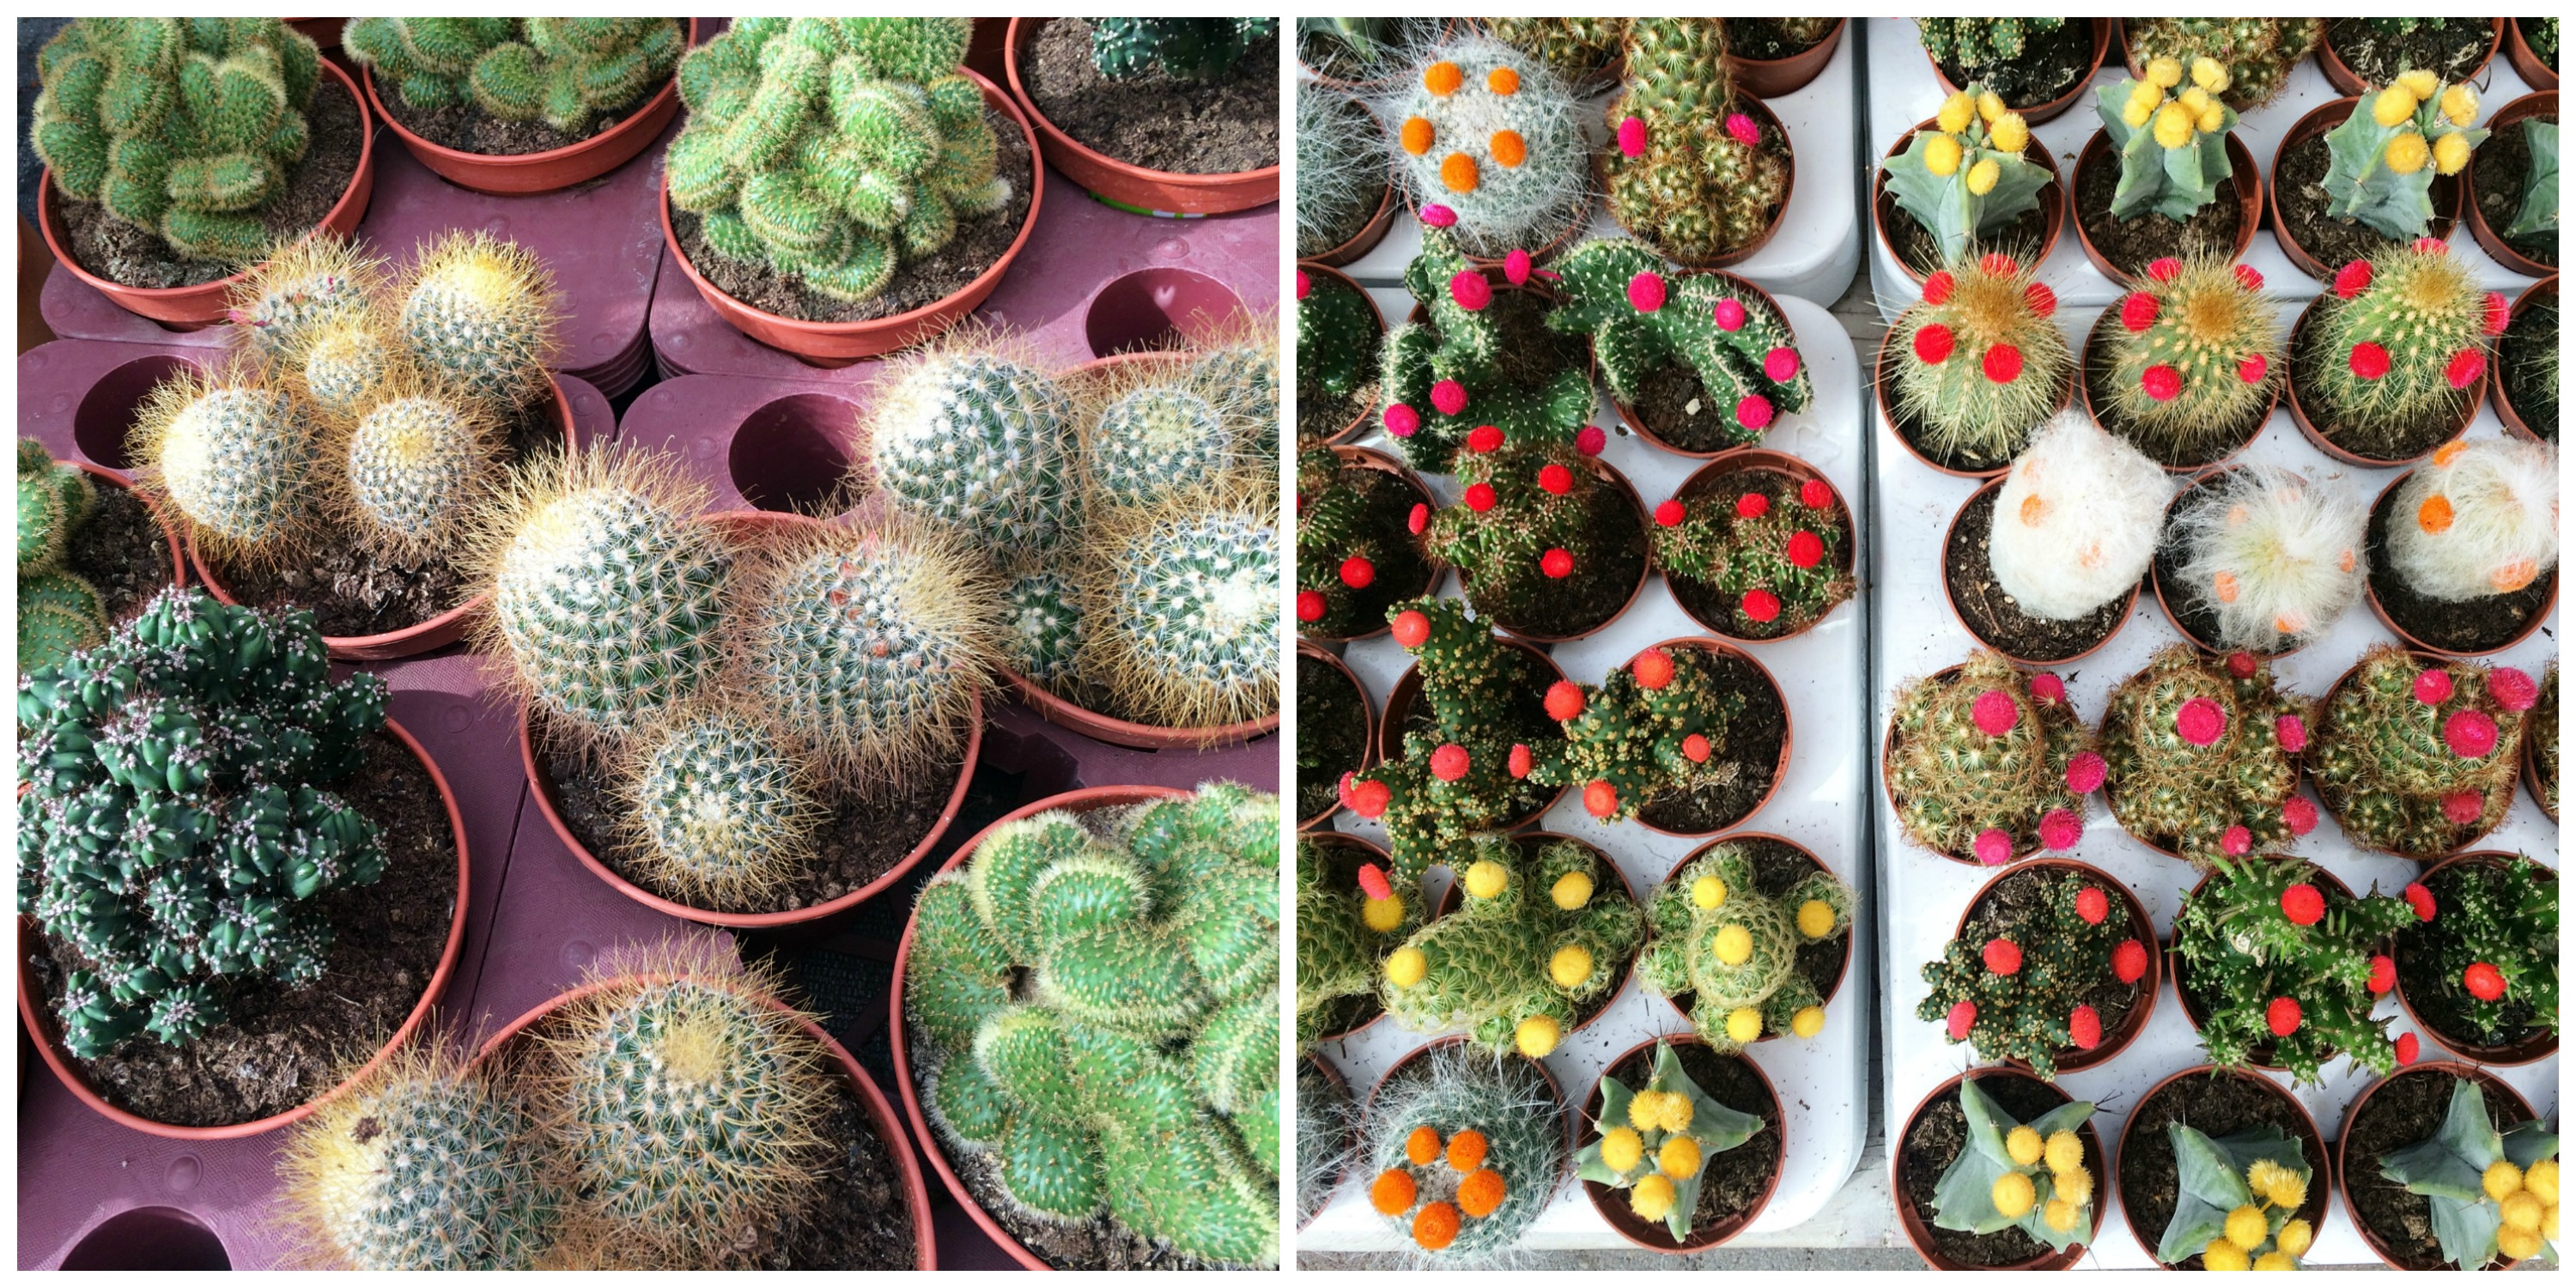 April recap: garden center cactus - http://weirdatheart.com/april-recap/